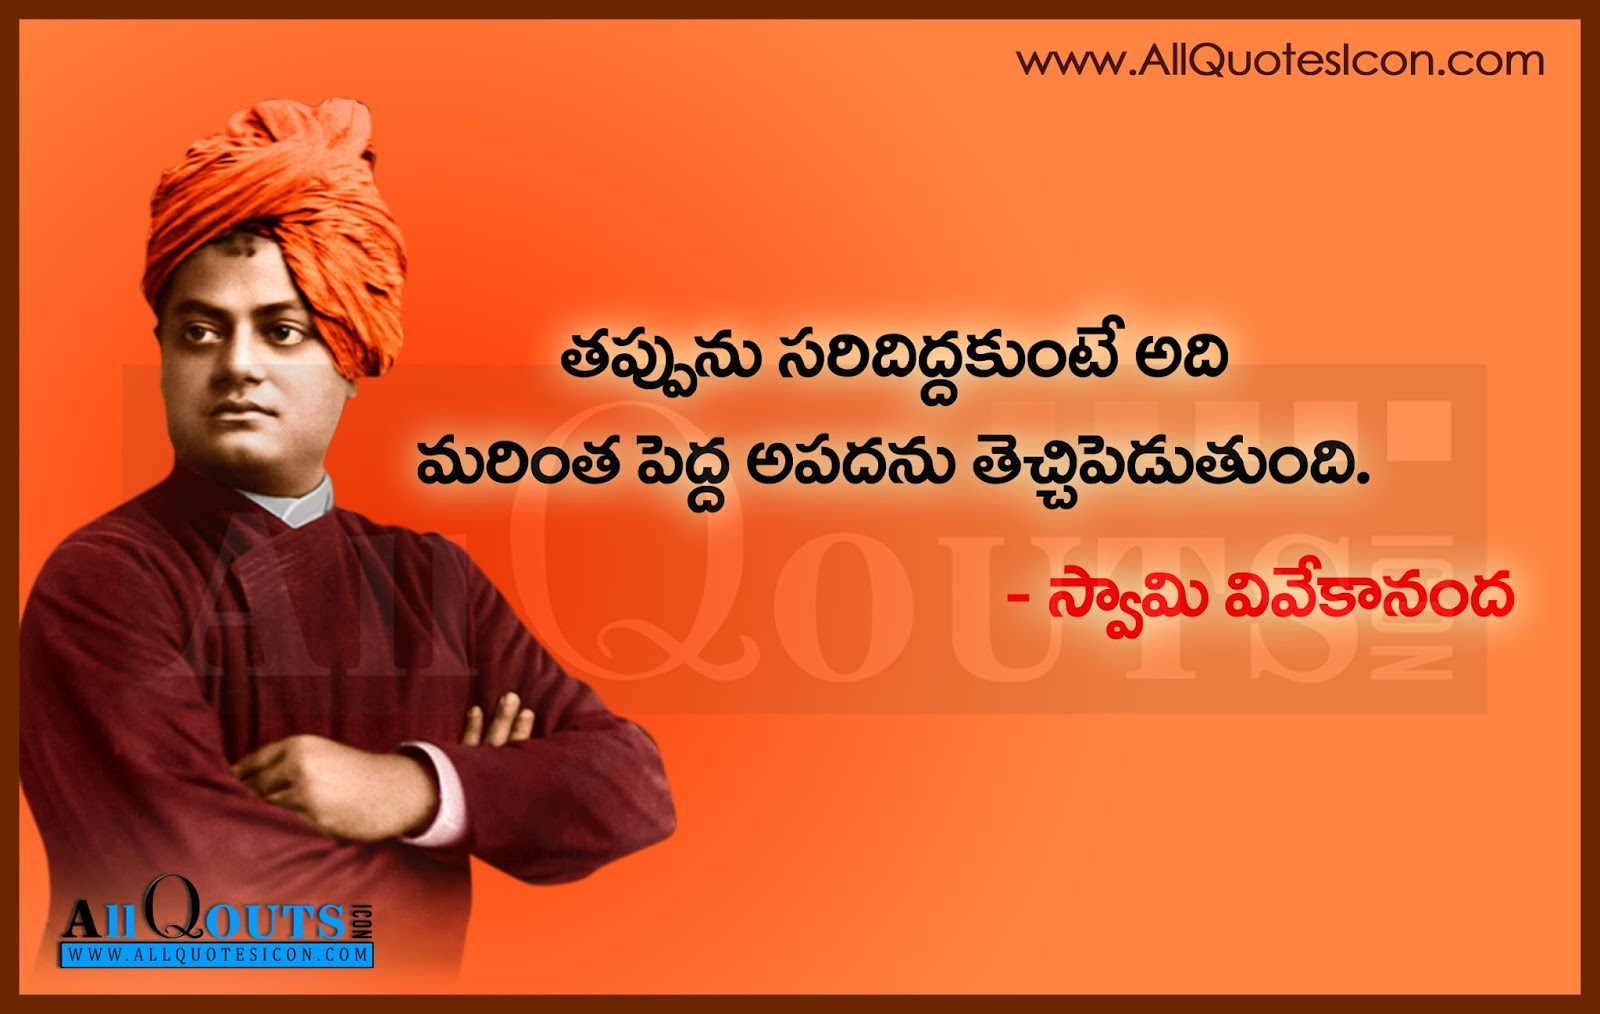 Telugu Quotation Wallpapers - Swami Vivekananda Quotes On Exams , HD Wallpaper & Backgrounds